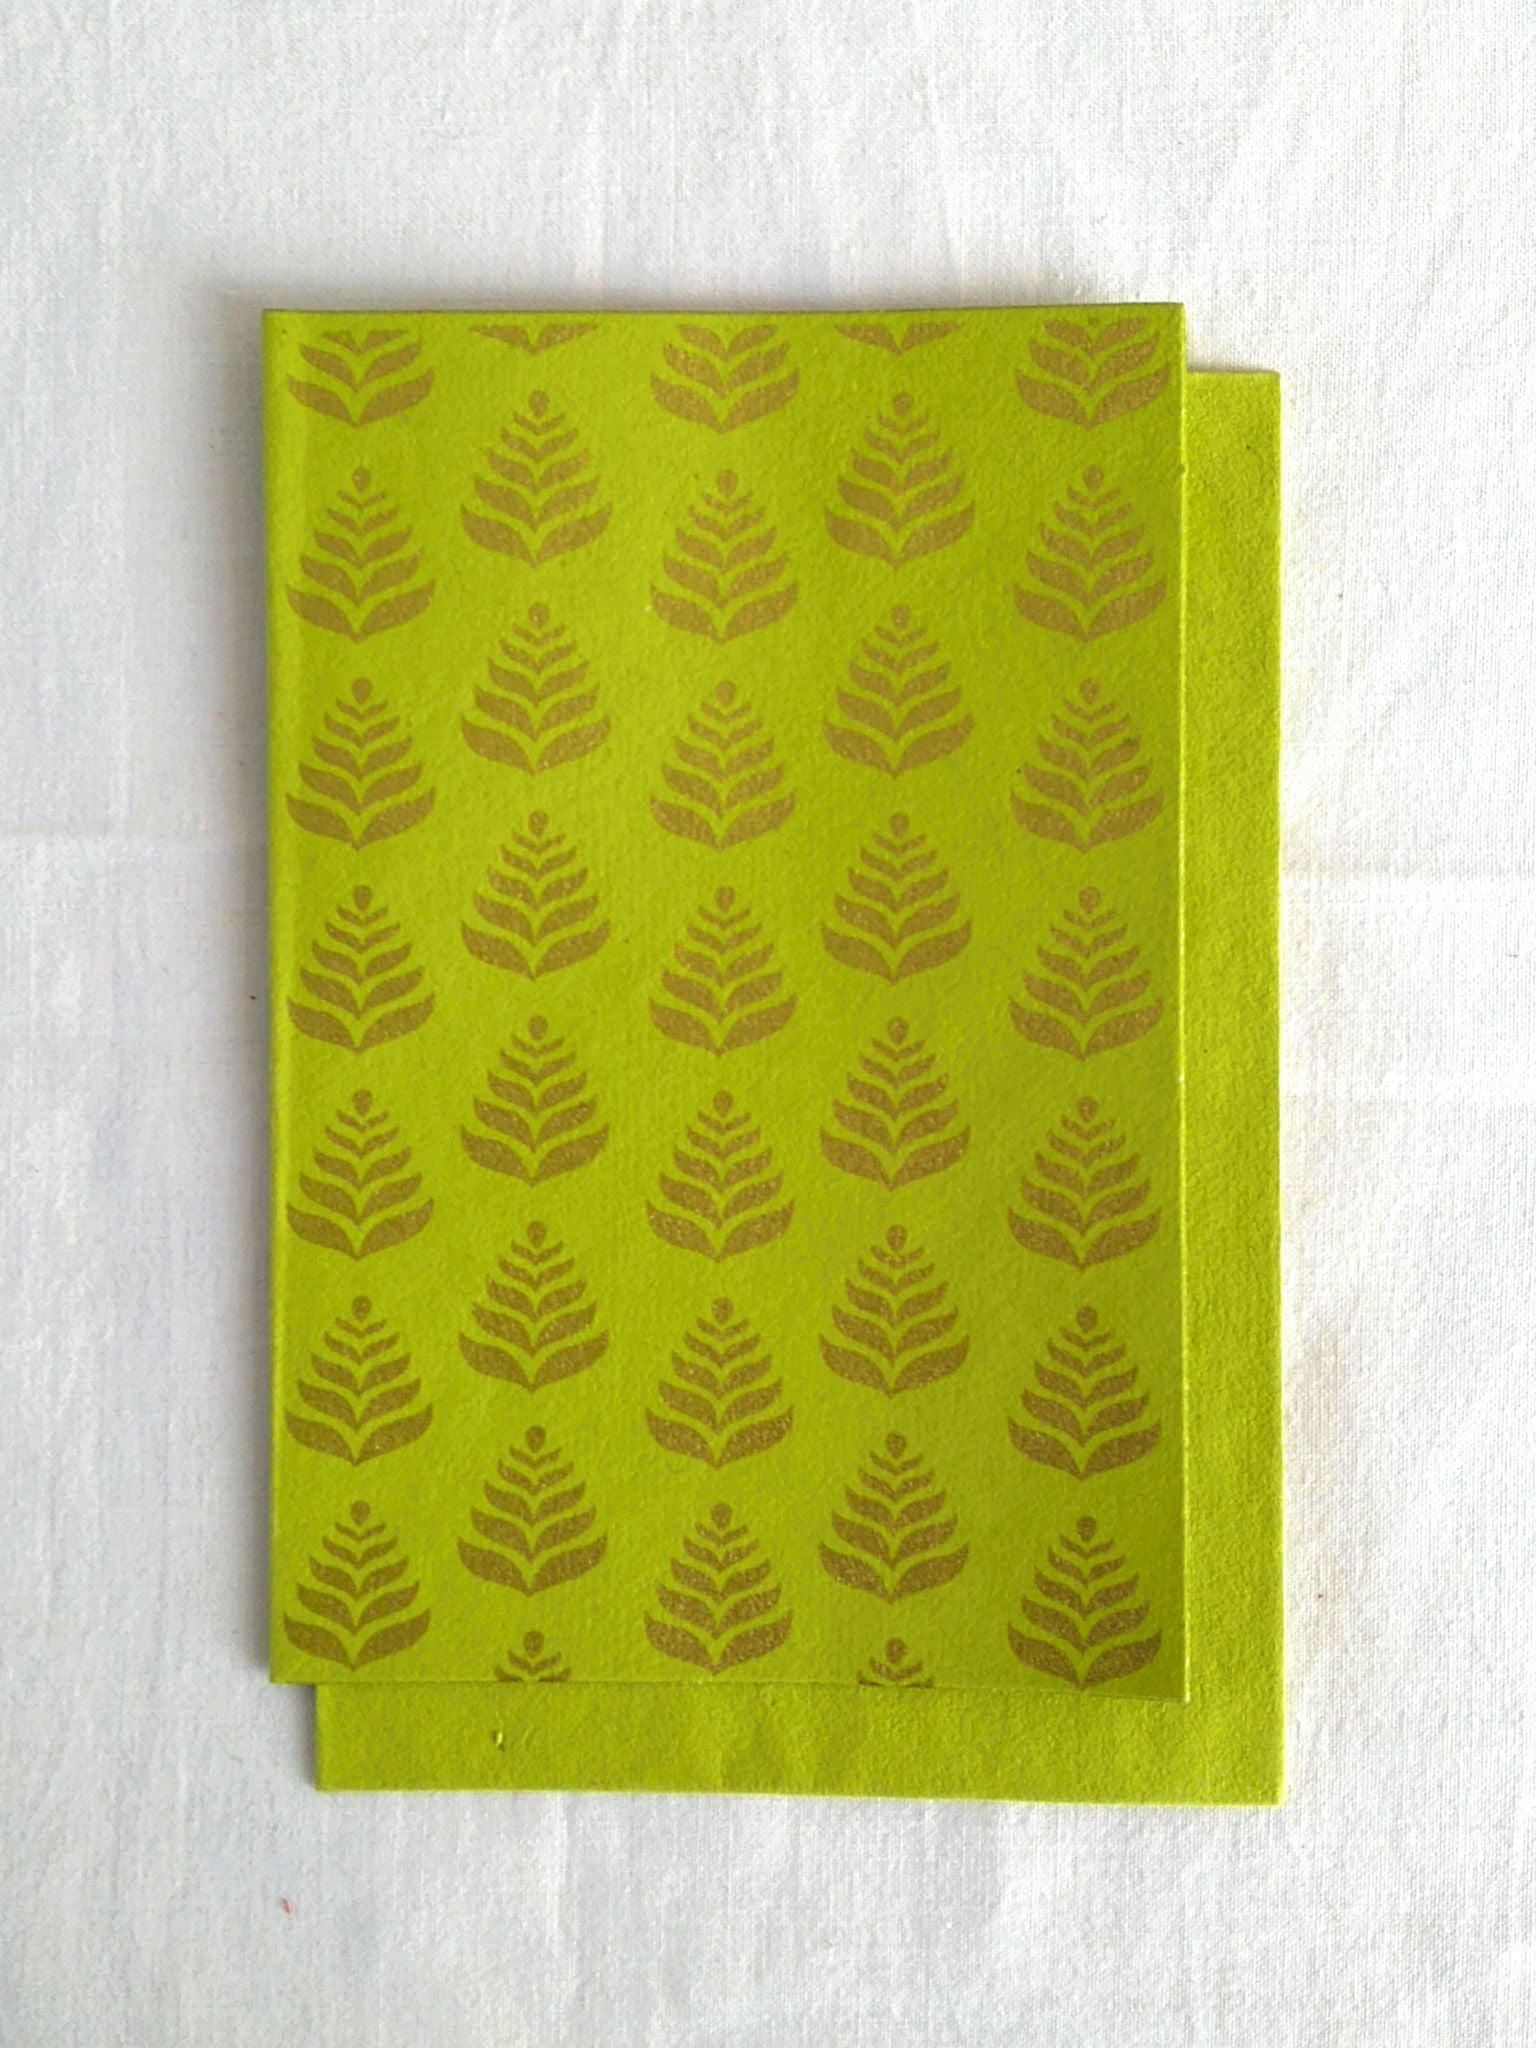 Chartreuse Lime - Set of 5 Gold Fern Motif Hand Block Printed Cards - An Indian Summer